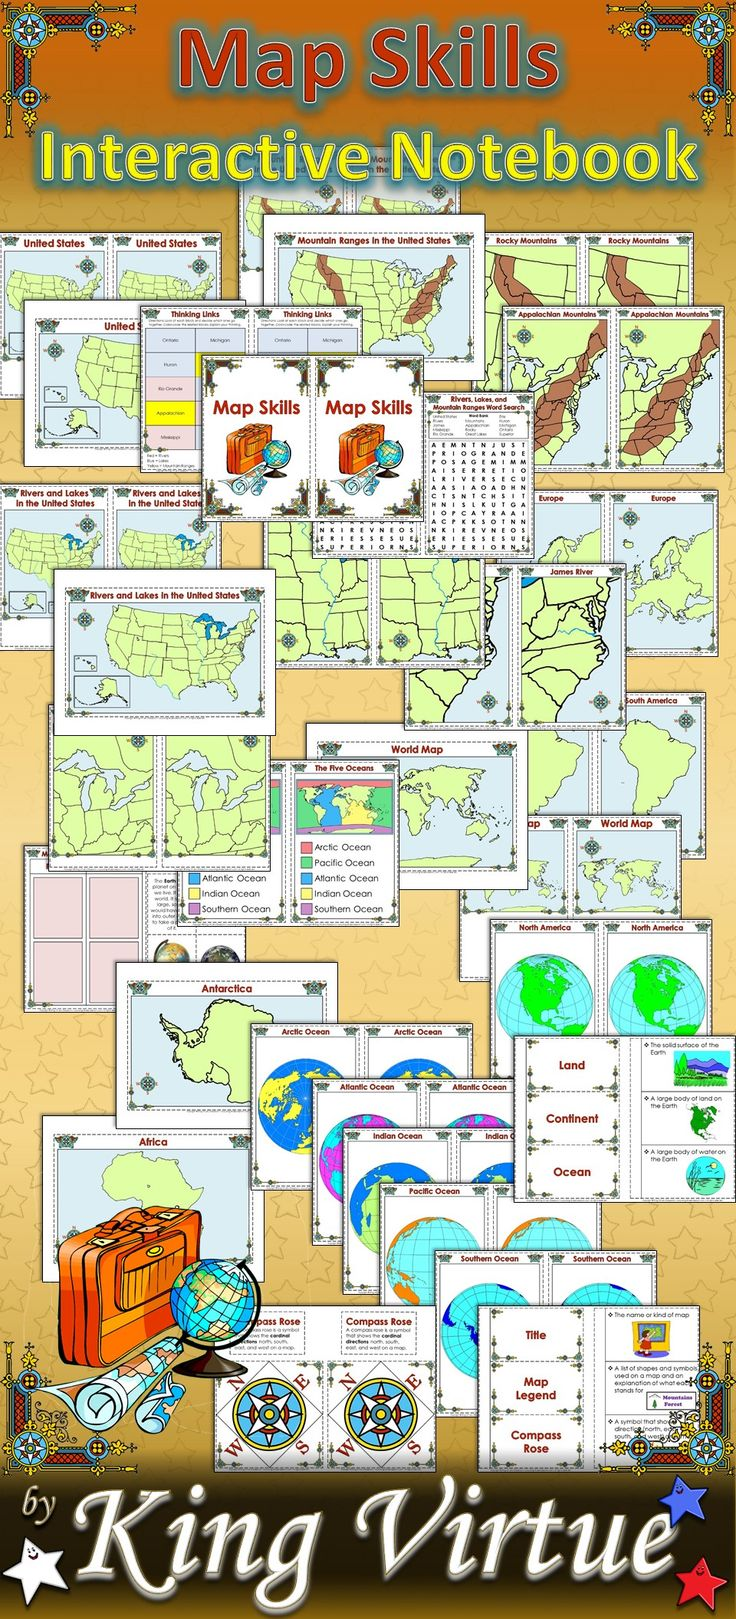 Best Ideas About Appalachian Mountains Map On Pinterest - Map usa with oceans